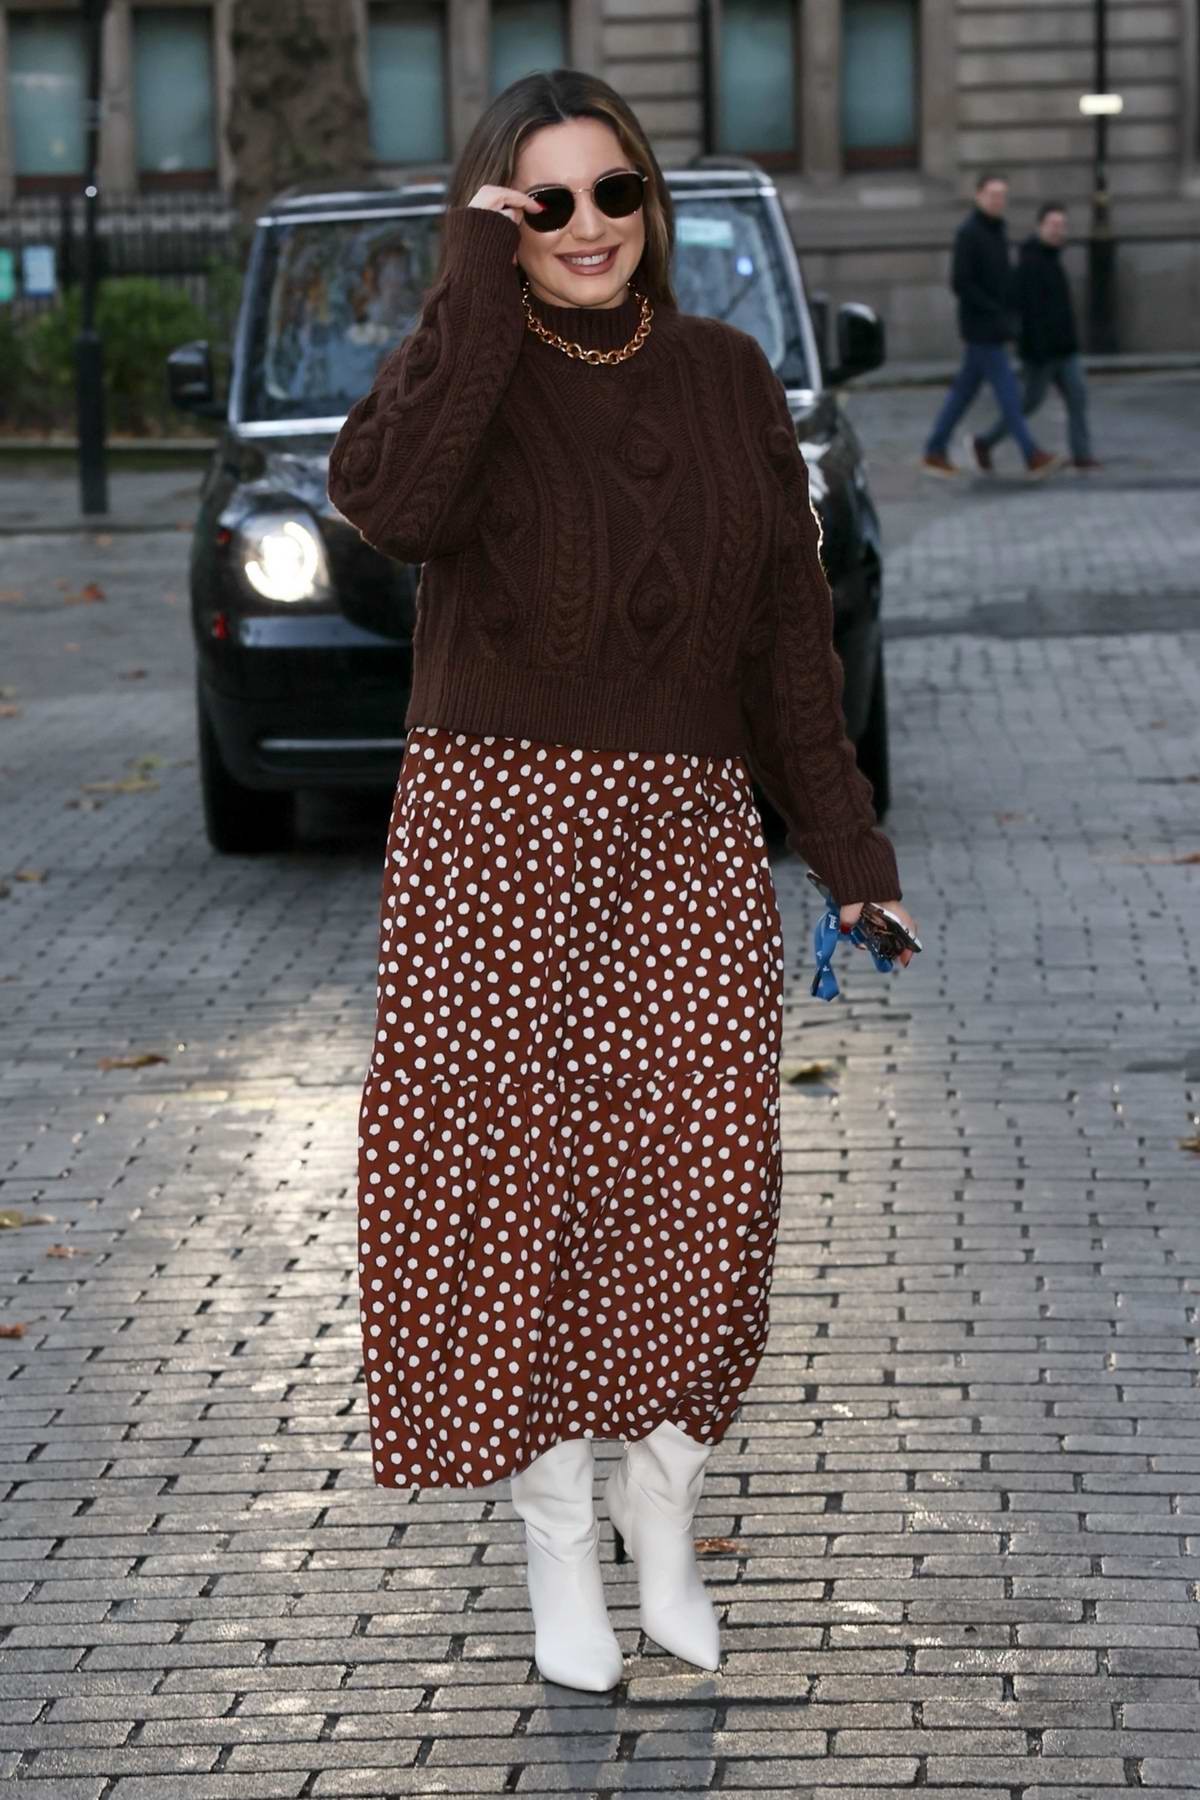 Kelly Brook wears a polka dot skirt and a brown sweater as she arrives at the Heart Radio Studios in London, UK